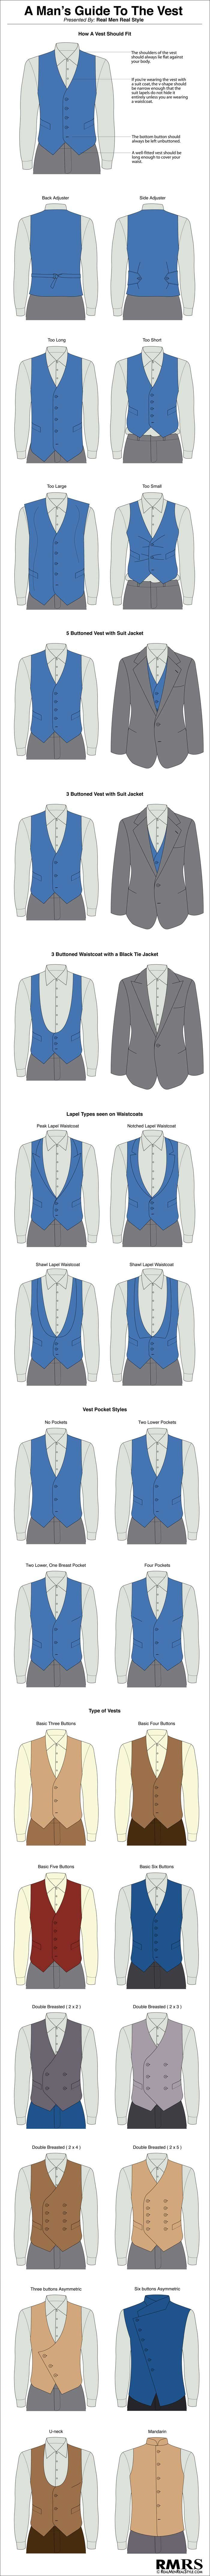 A Mans Guide To The Vest |  Repined by www.movingforlove.com